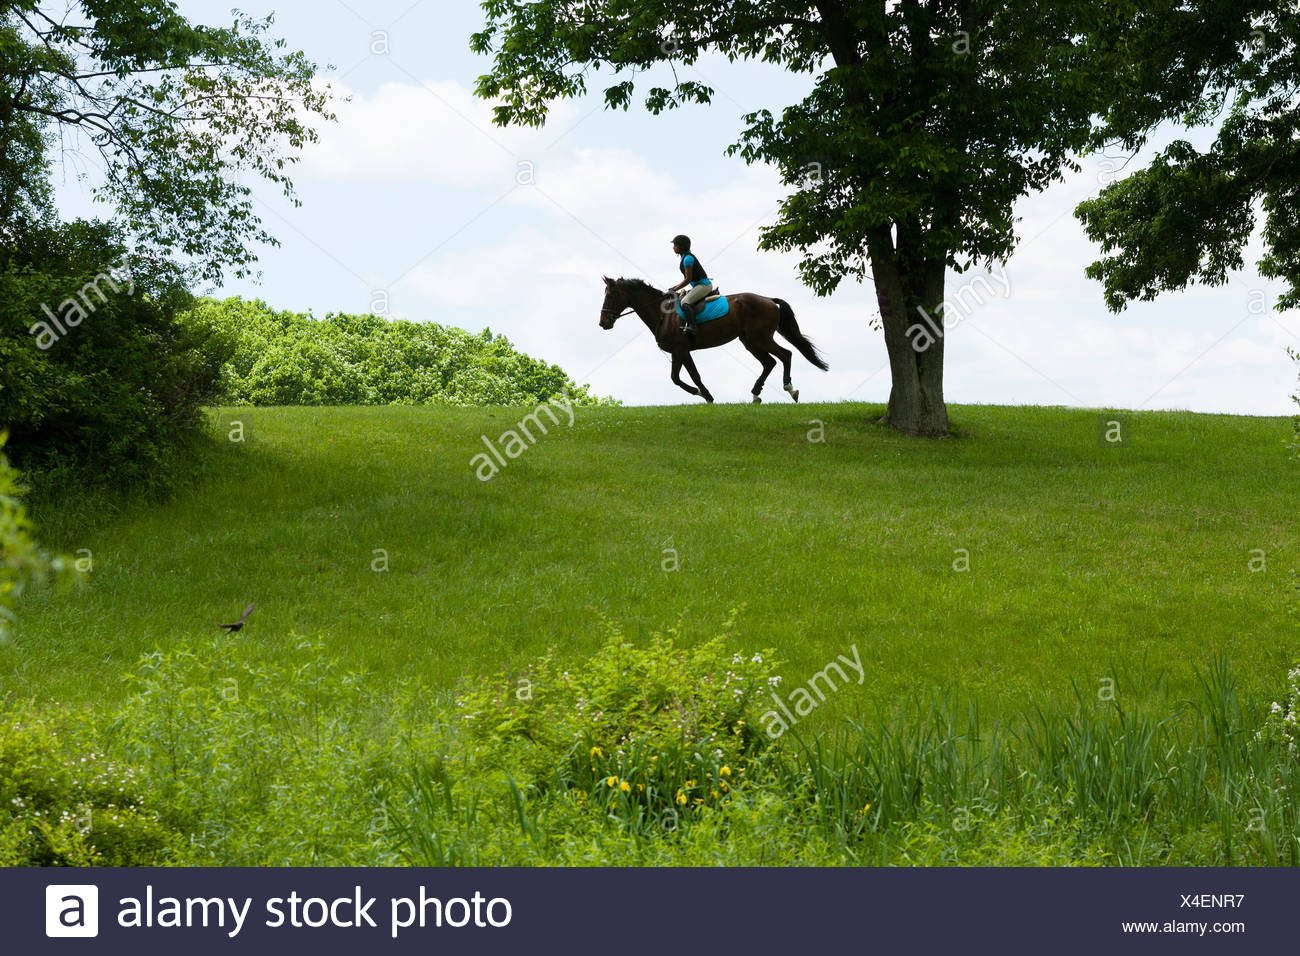 Horse rider riding through field landscape - Stock Image